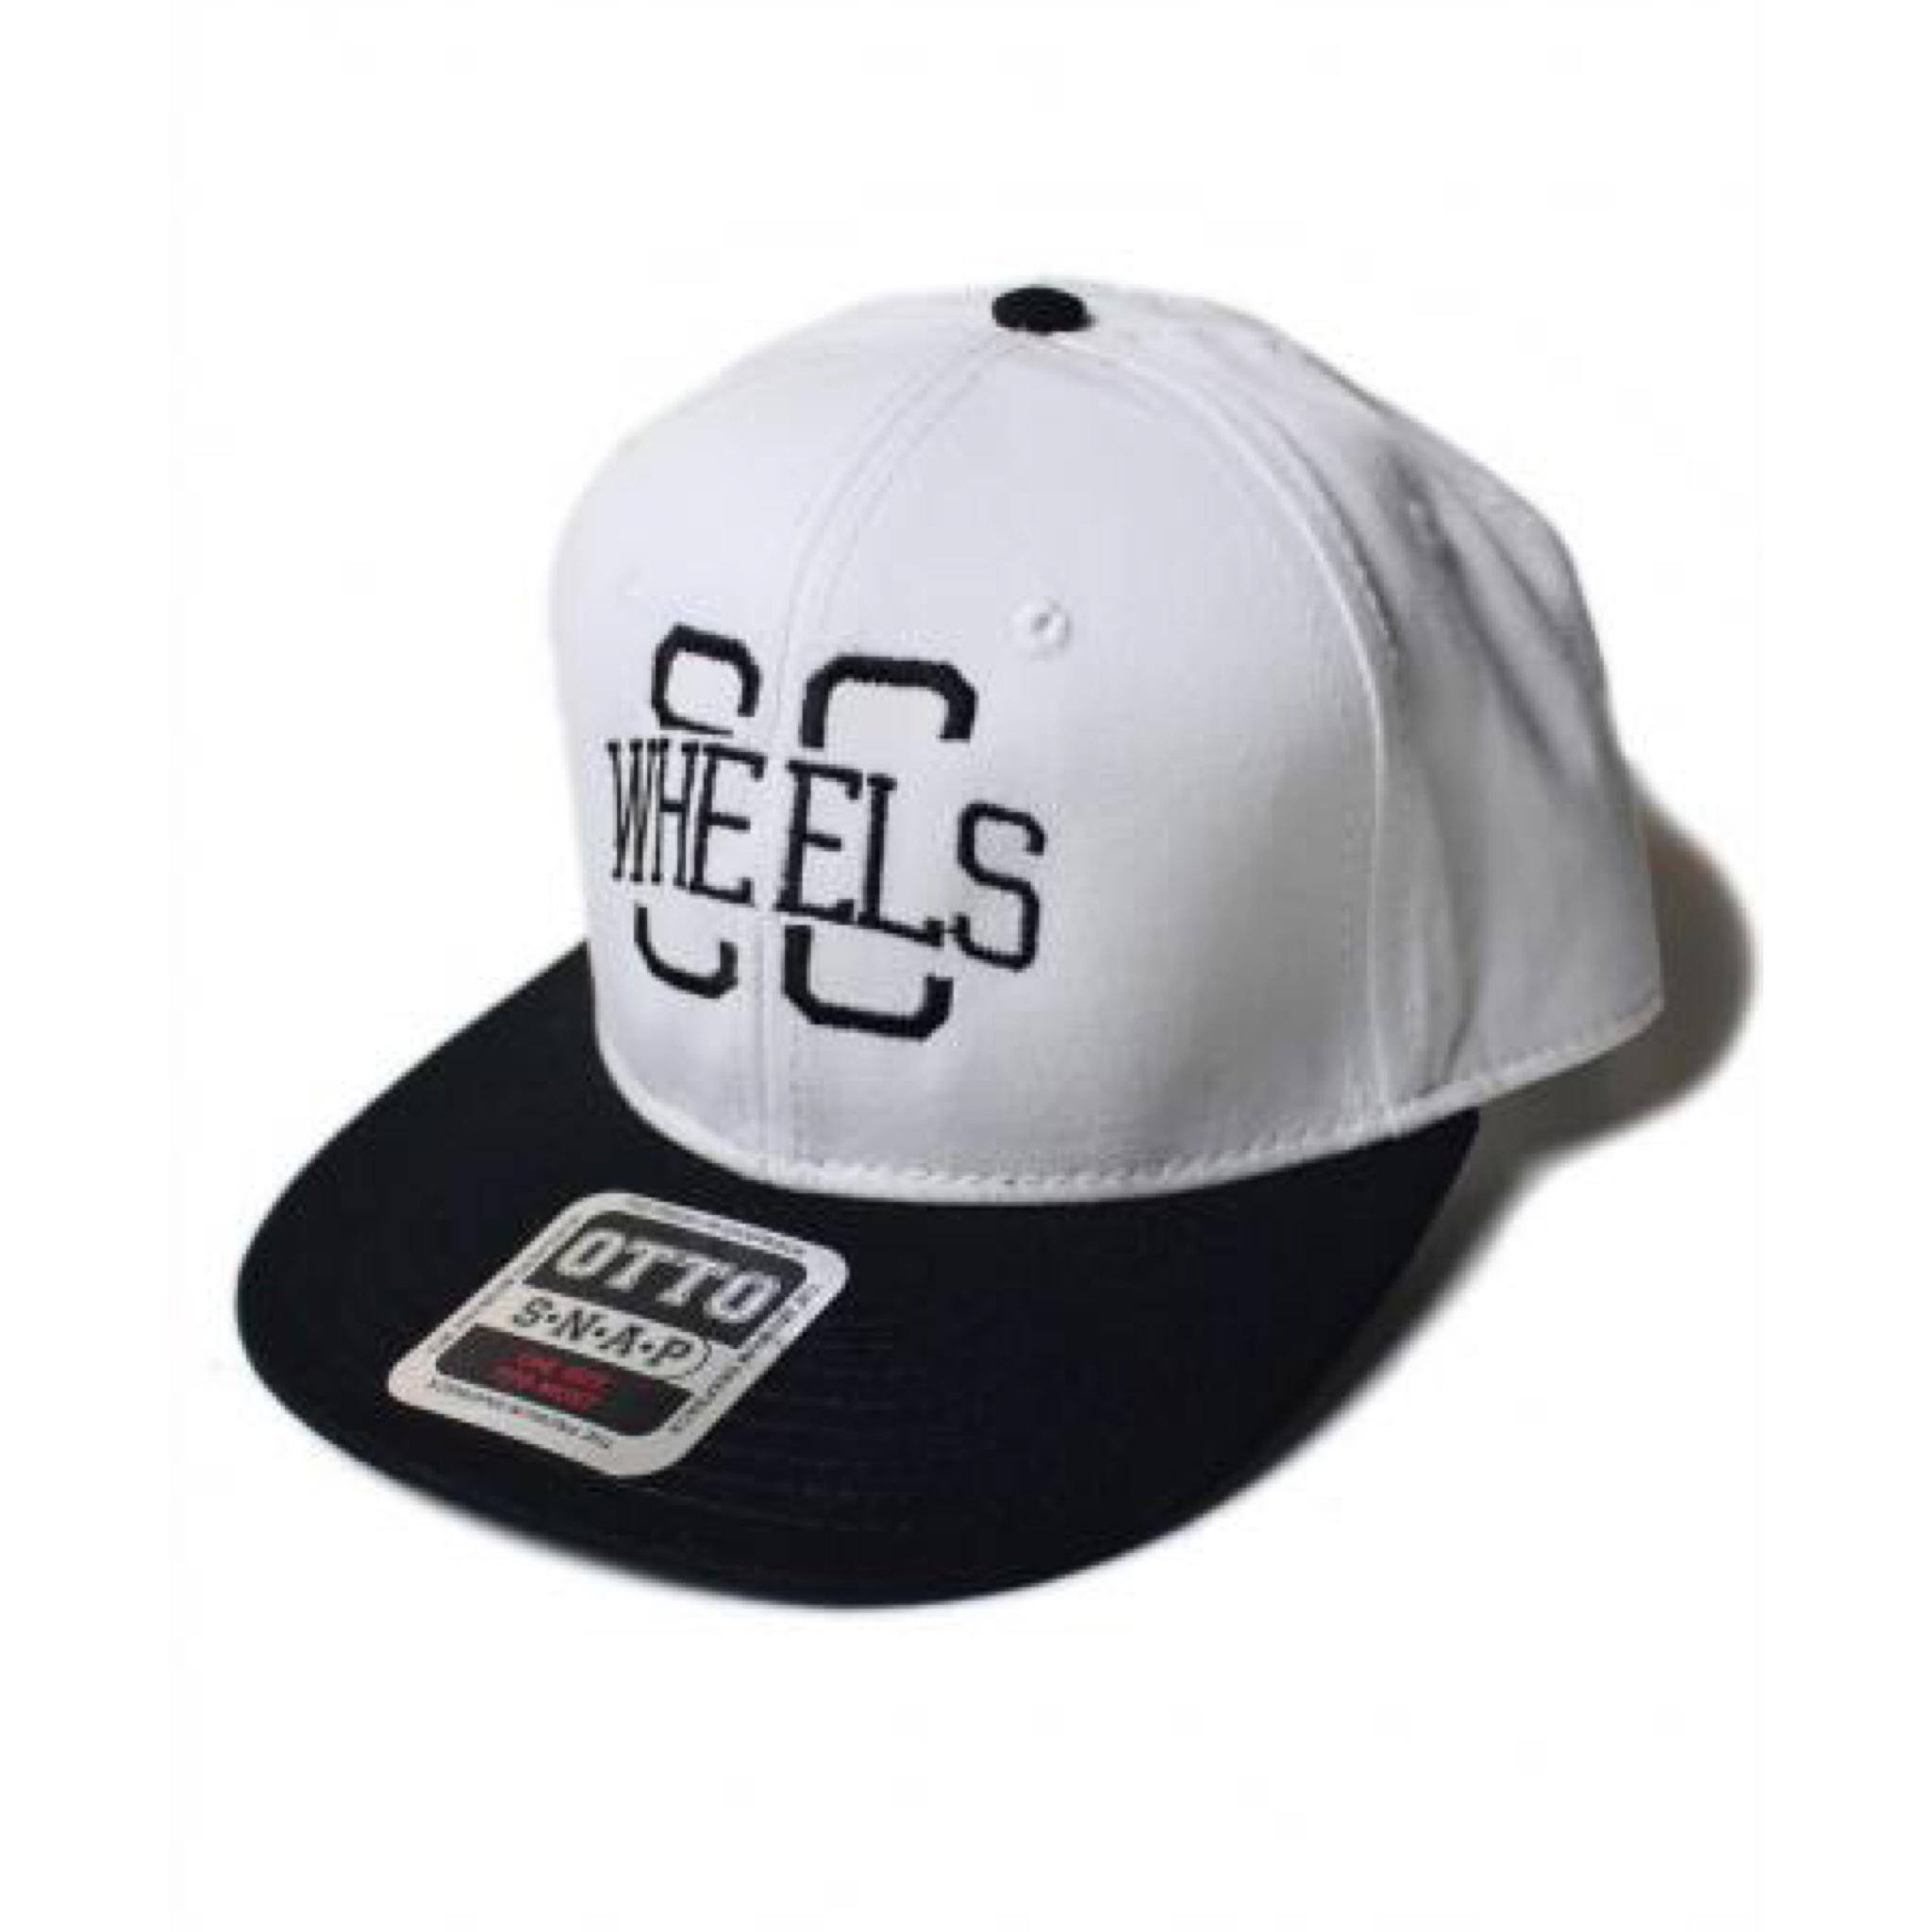 RUTHLESS #S.C.W Cotton Cap White